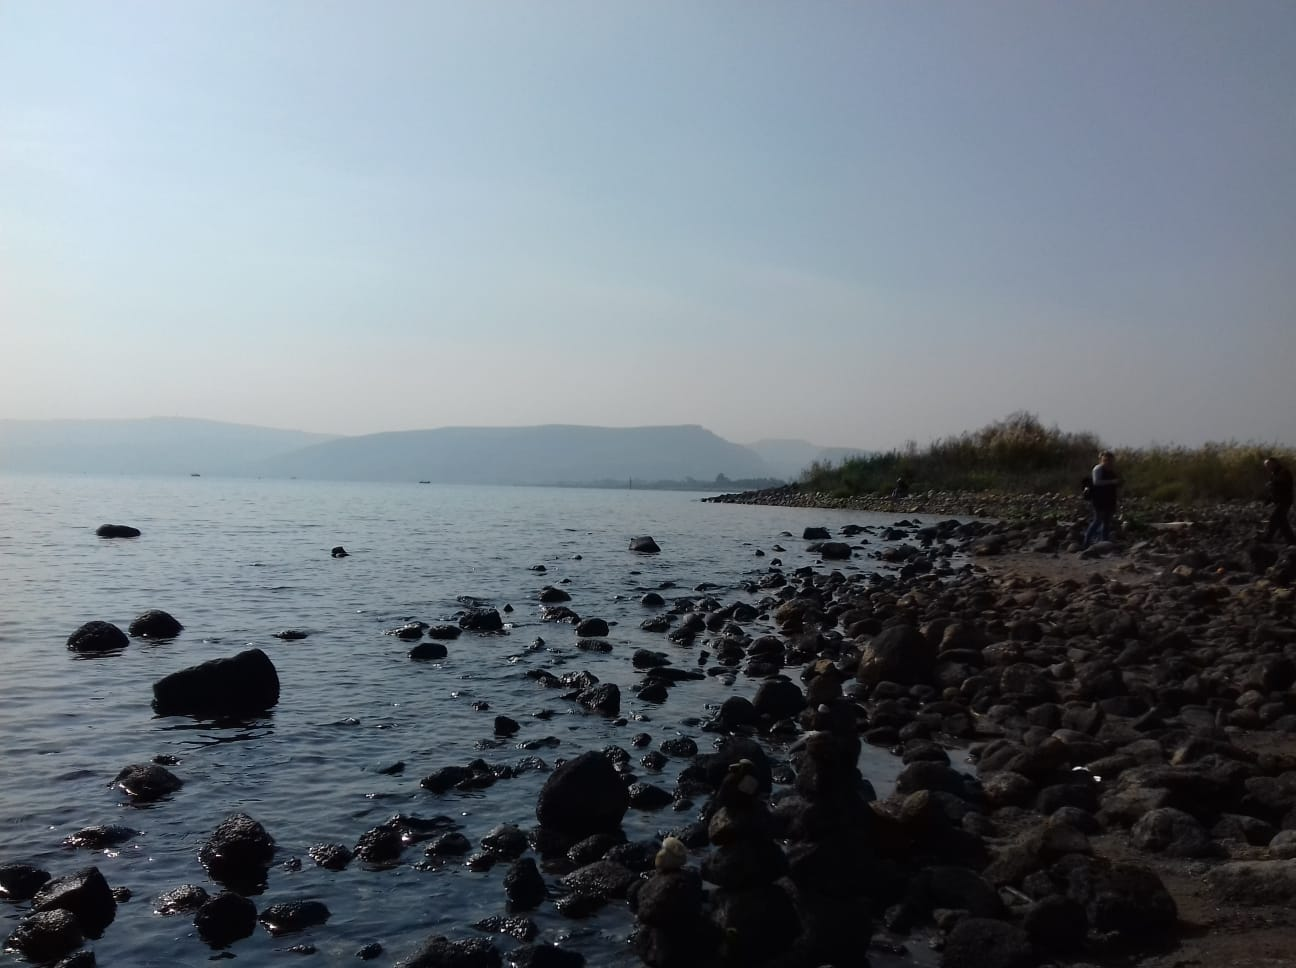 The shore of lake Galilee